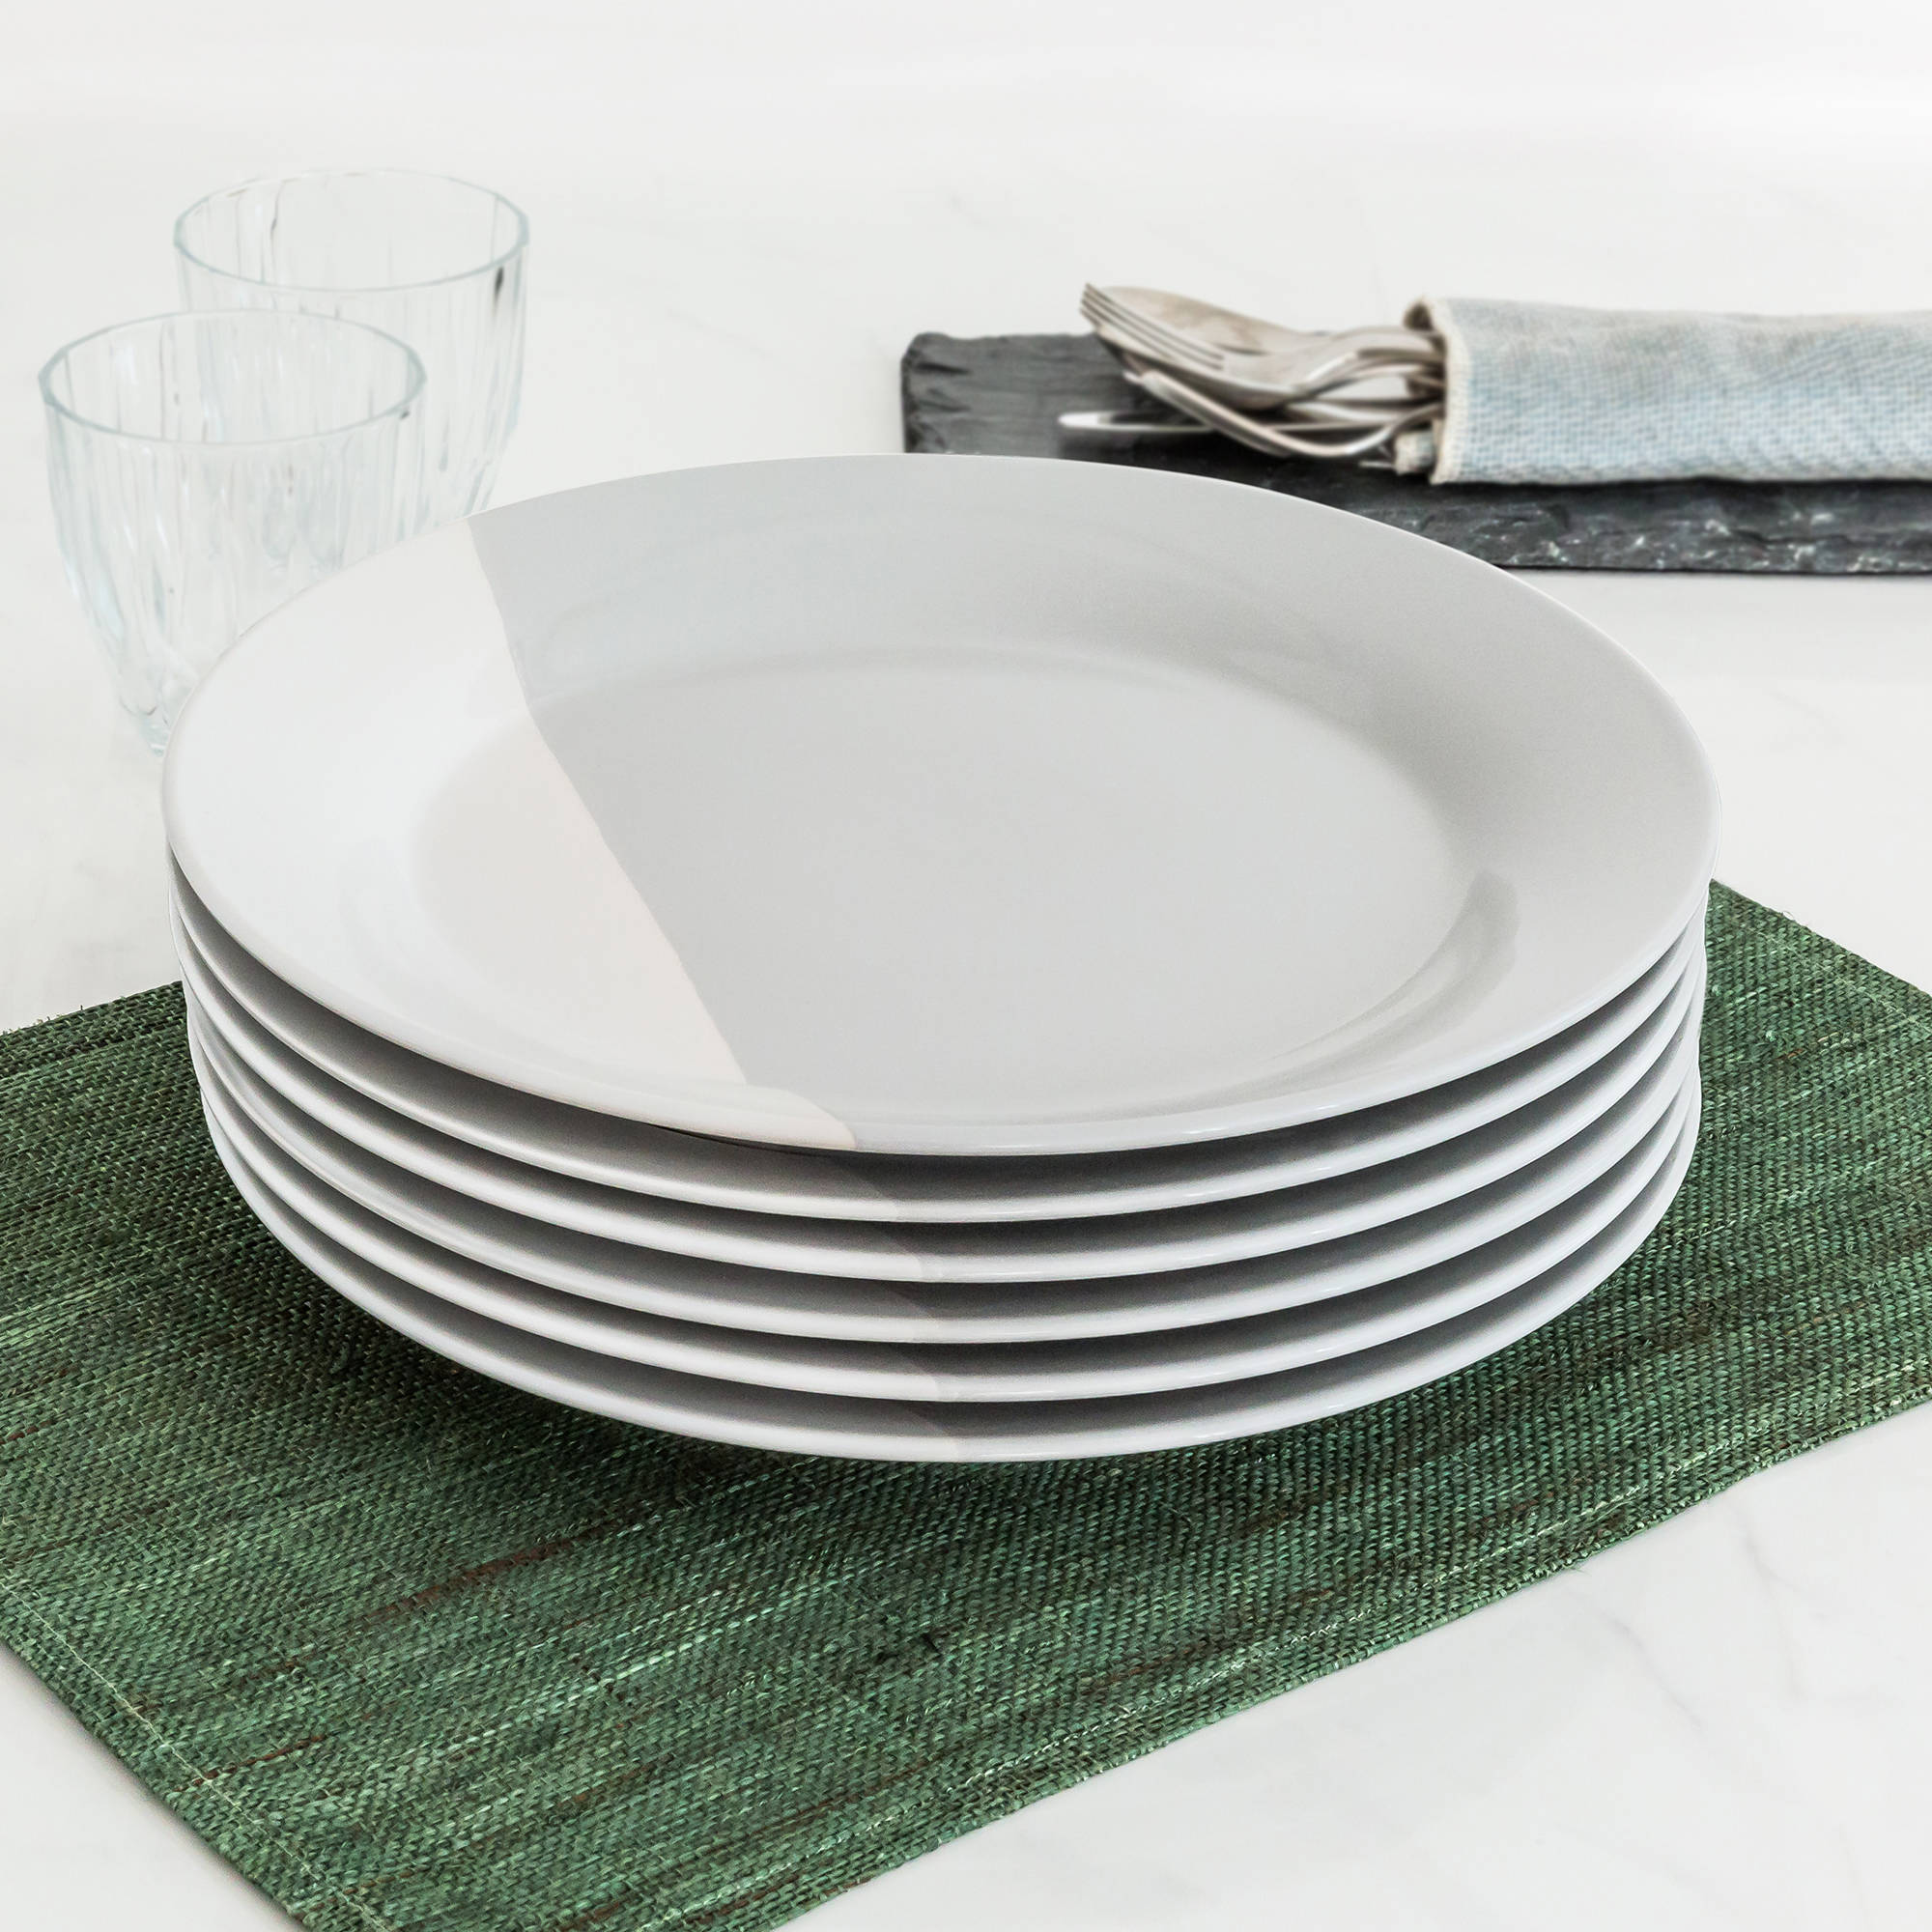 Better Homes and Gardens Color Dipped Dinner Plates Grey Set of 6 & Better Homes and Gardens Color Dipped Dinner Plates Grey Set of 6 ...